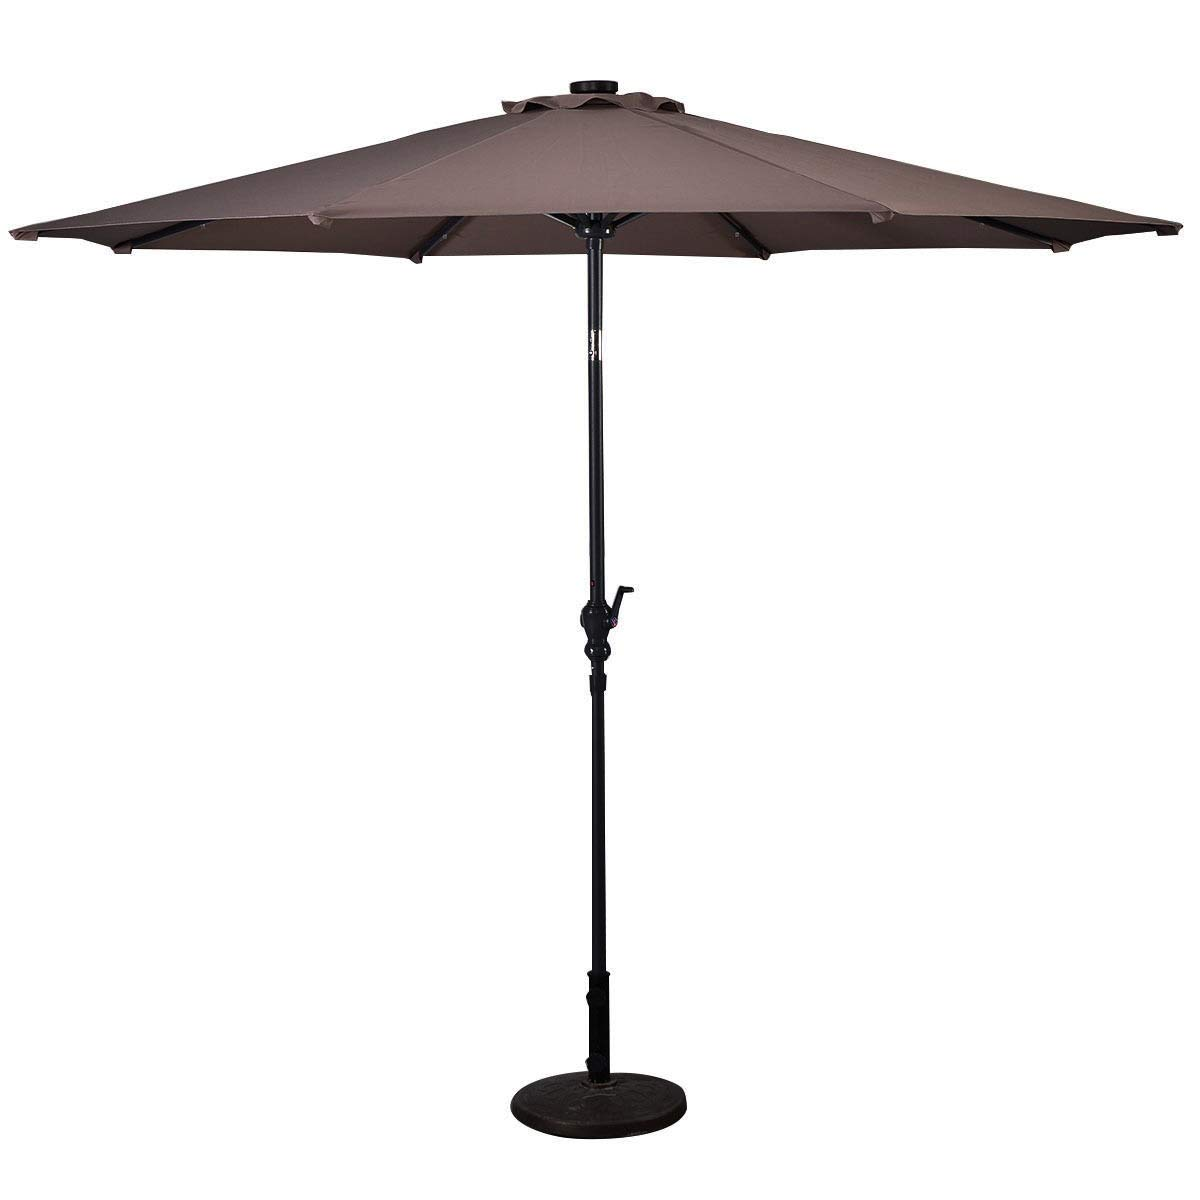 Lucky-gift - Tan 10 ft Patio Solar Umbrella with Crank and LED Lights - Top Outdoor Umbrella with Crank - Uv Protecting Umbrellas Waterproof for Table with Lights Outdoor Cover by Lucky-gift